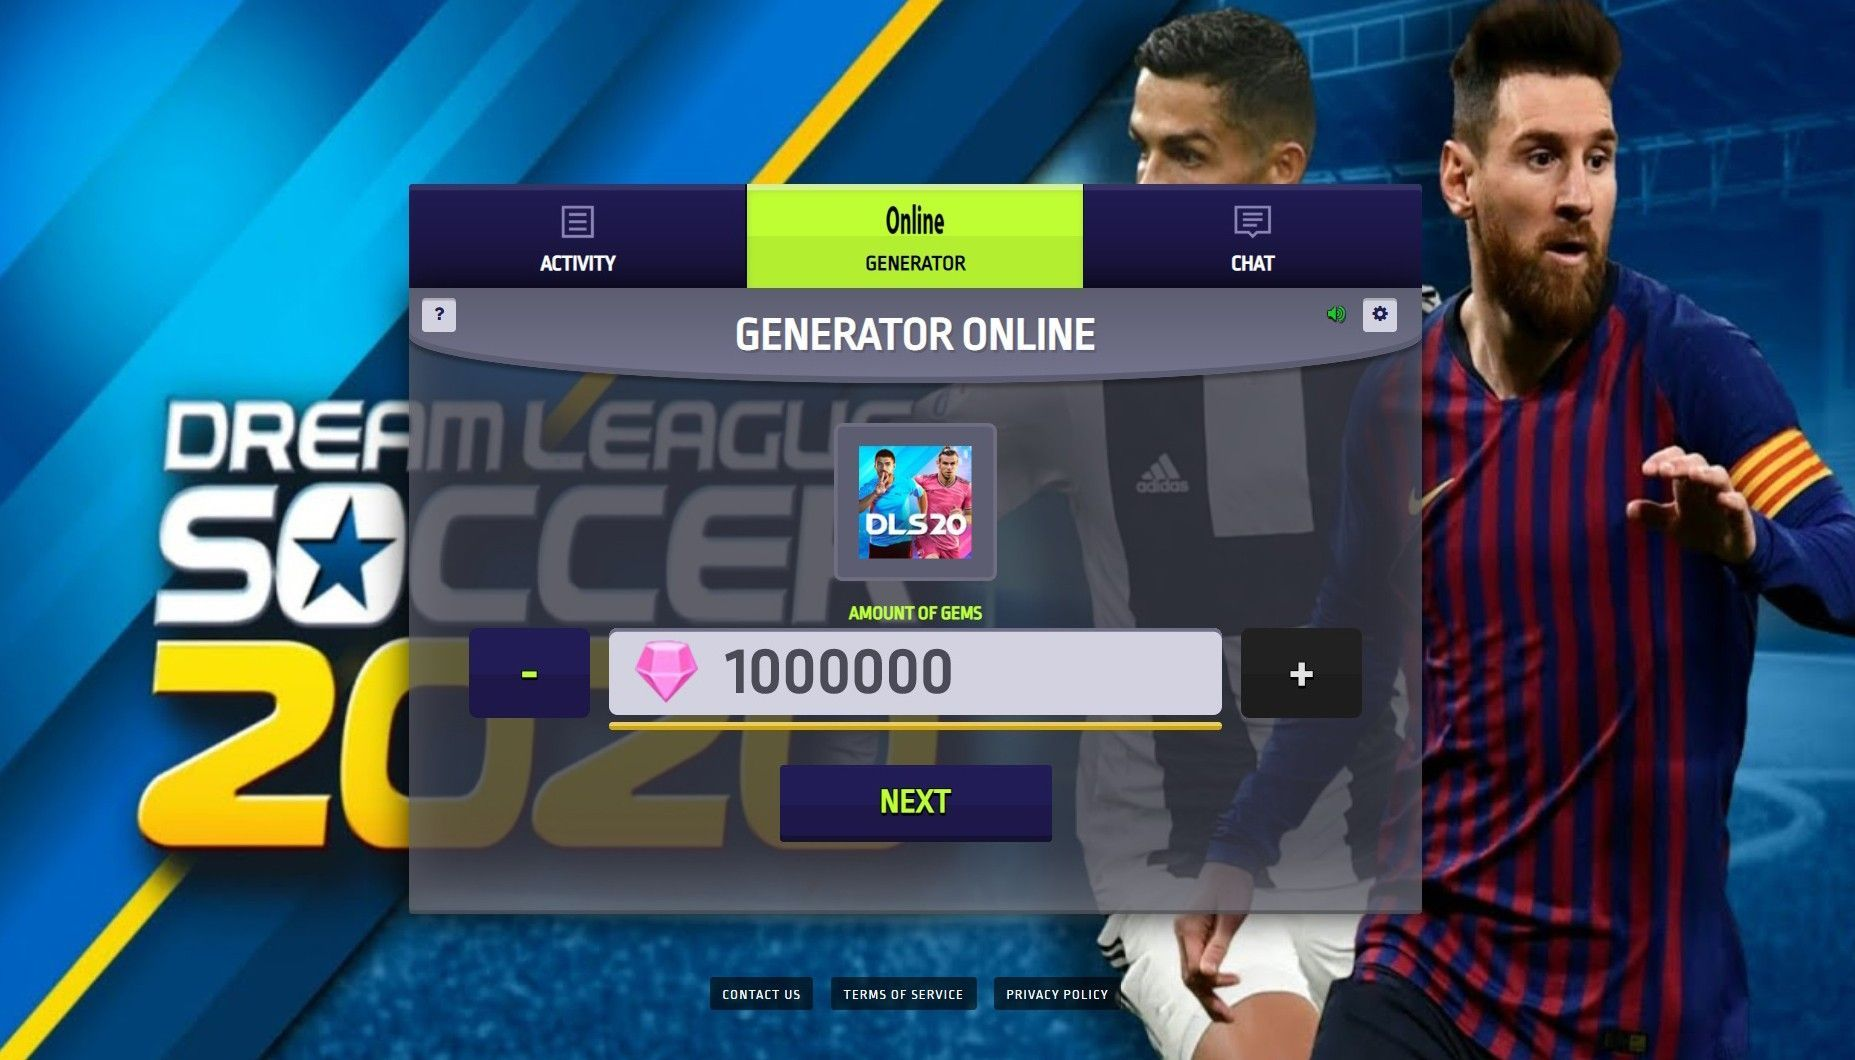 Dream League Soccer 2020 Unlimited Coins In 2020 Games Cheating Mobile Game